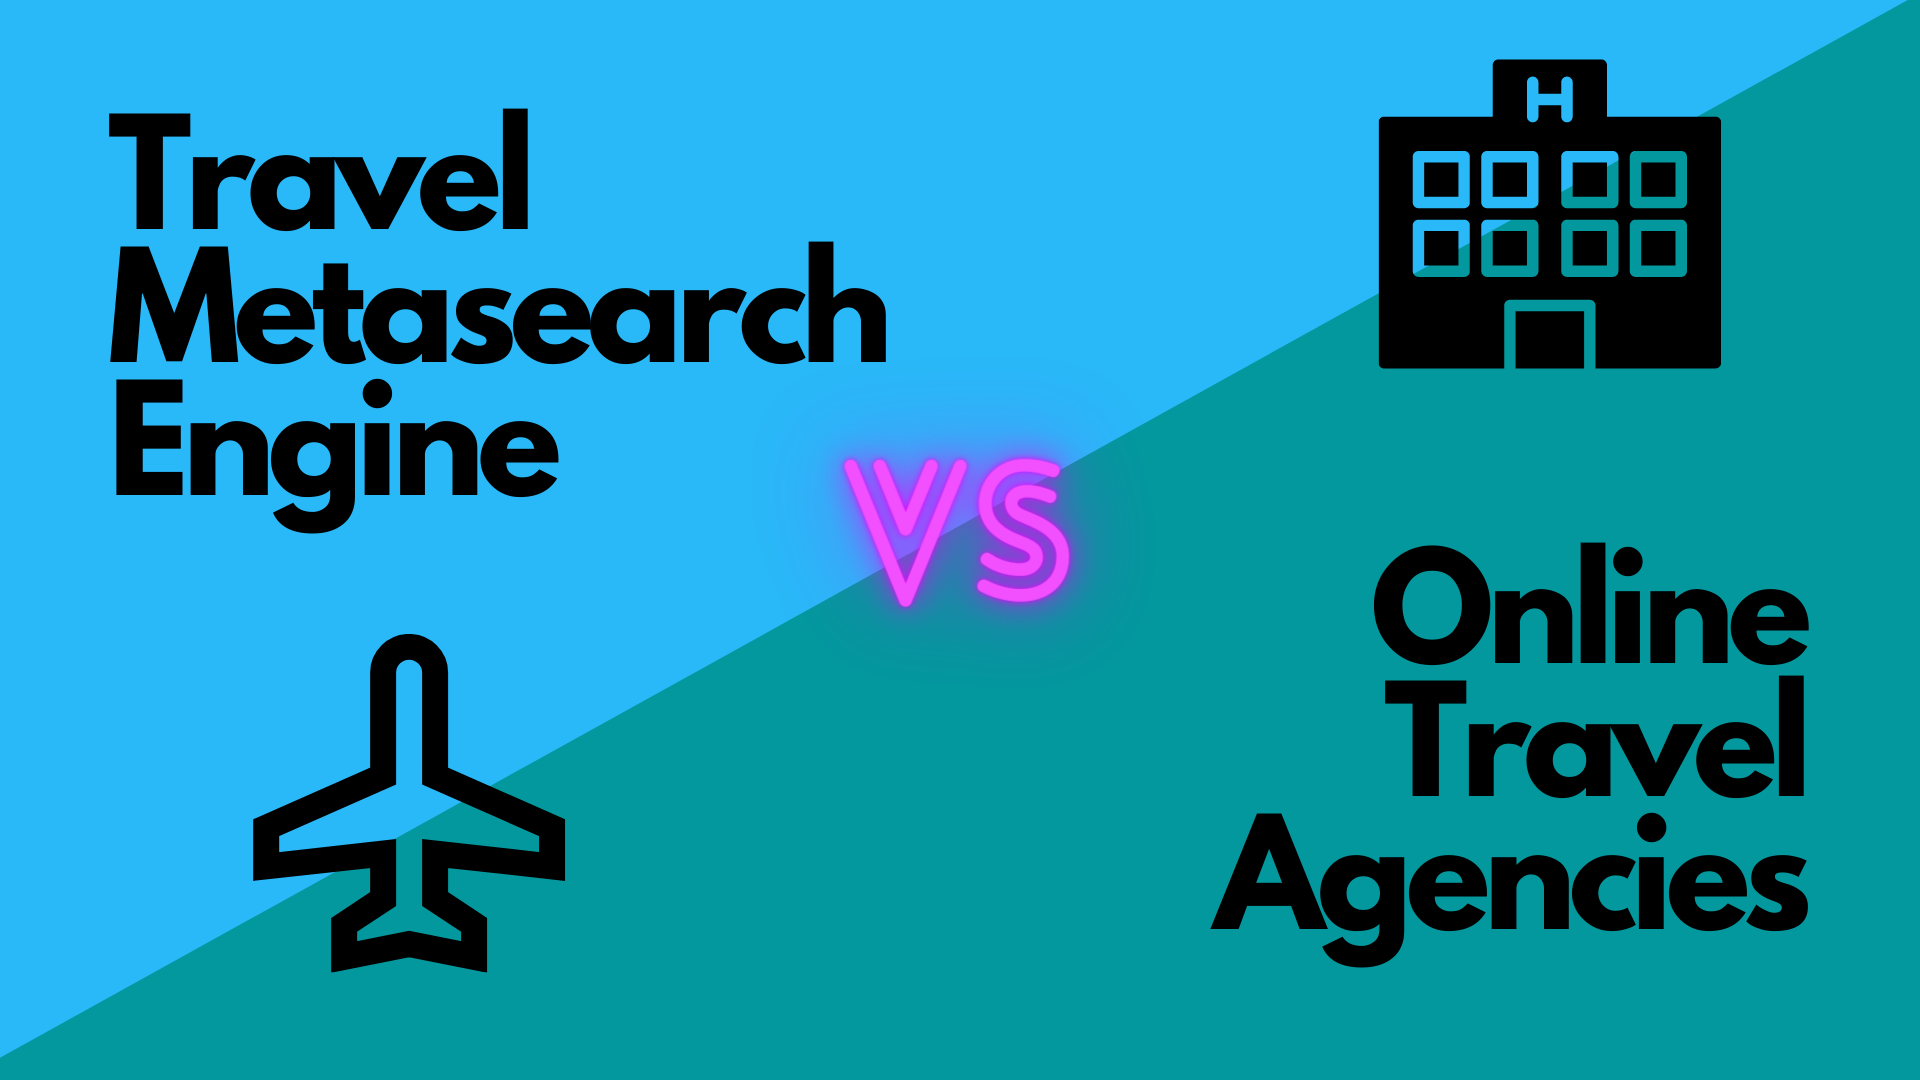 Travel Metasearch Engines VS Online Travel Agencies